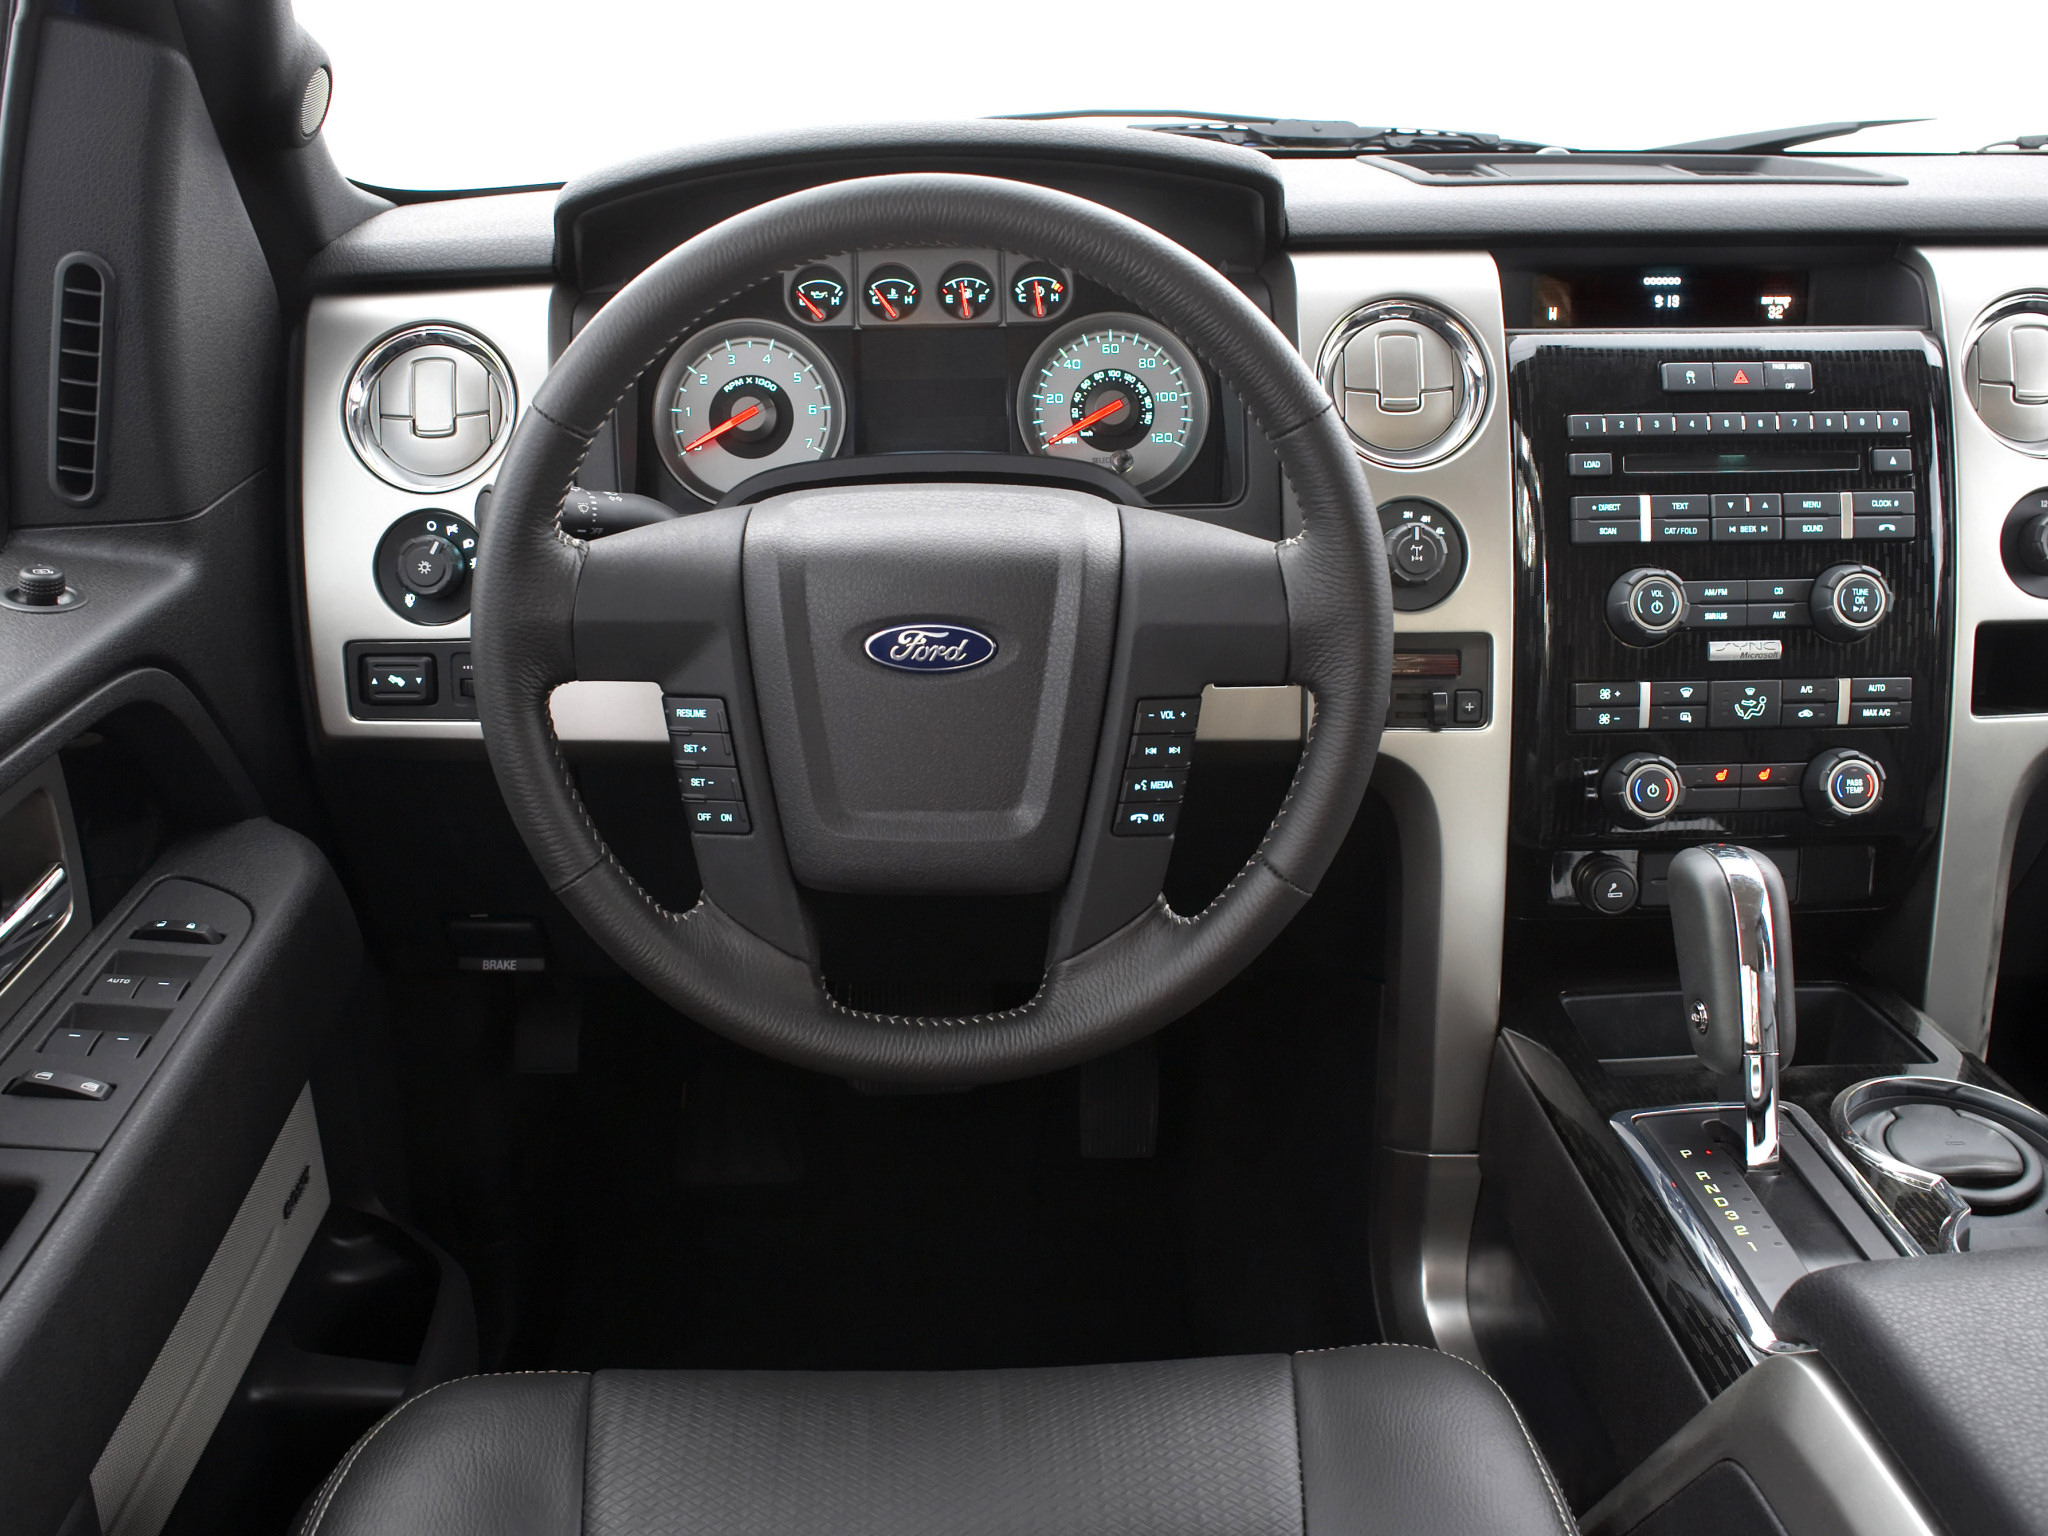 2008 ford f 150 fx4 4x4 truck interior wallpaper